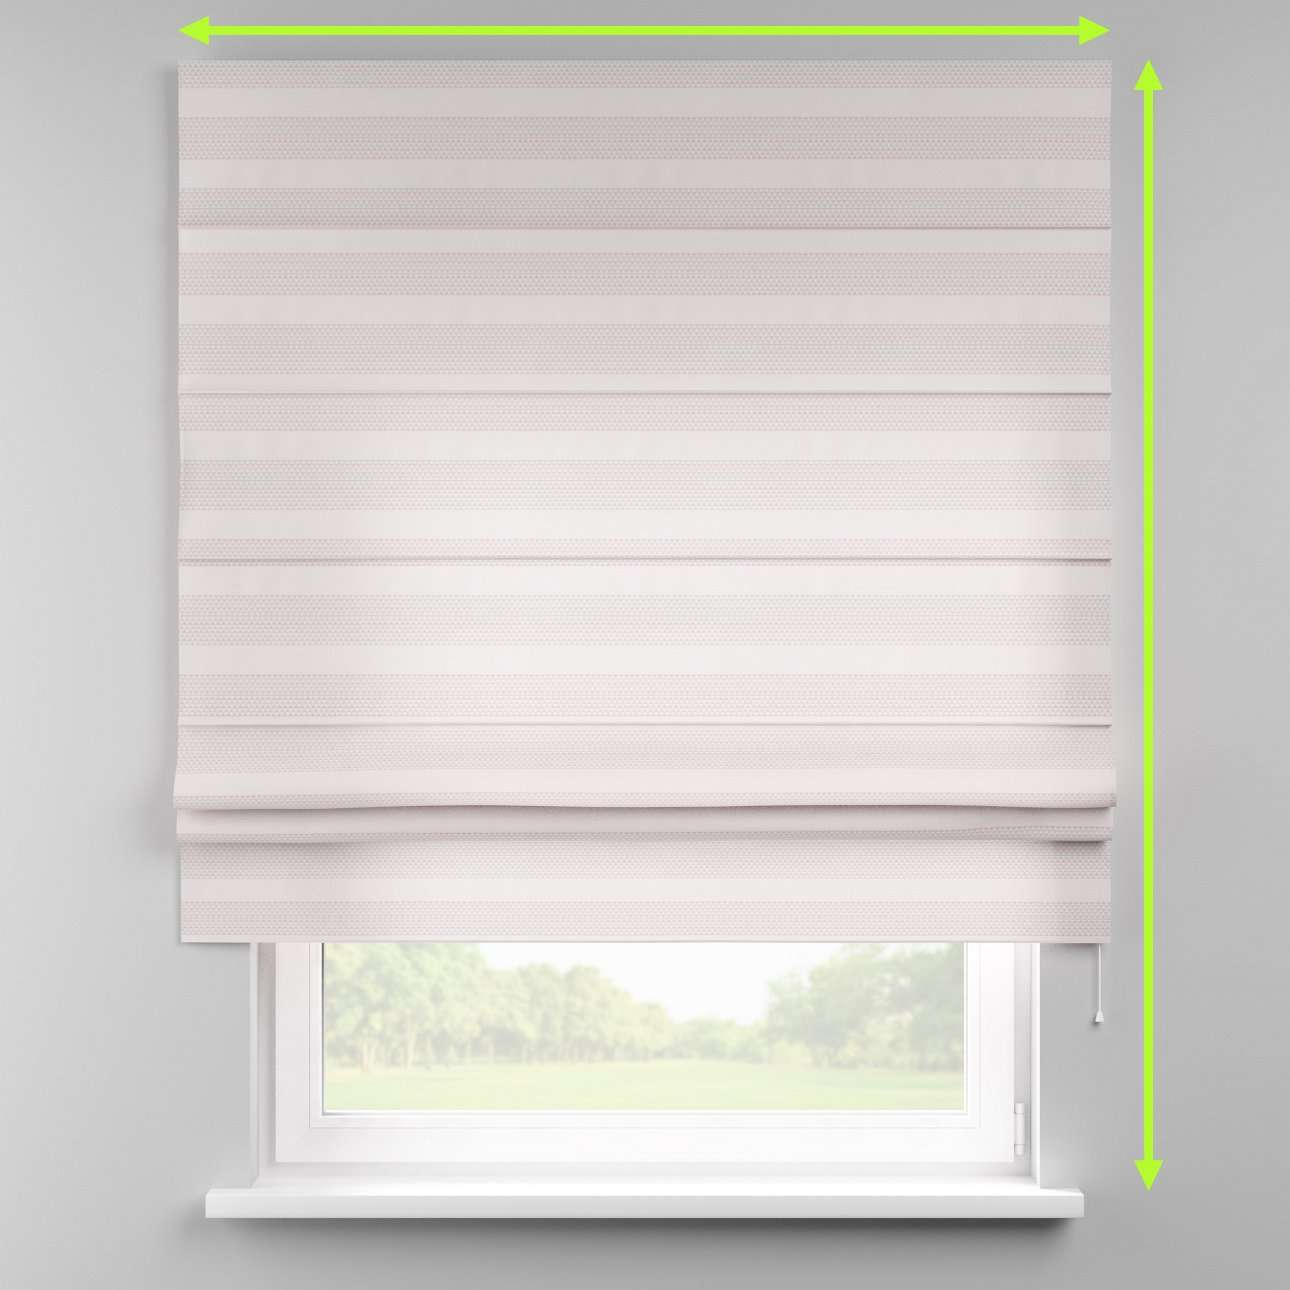 Padva roman blind  in collection Rustica, fabric: 140-29